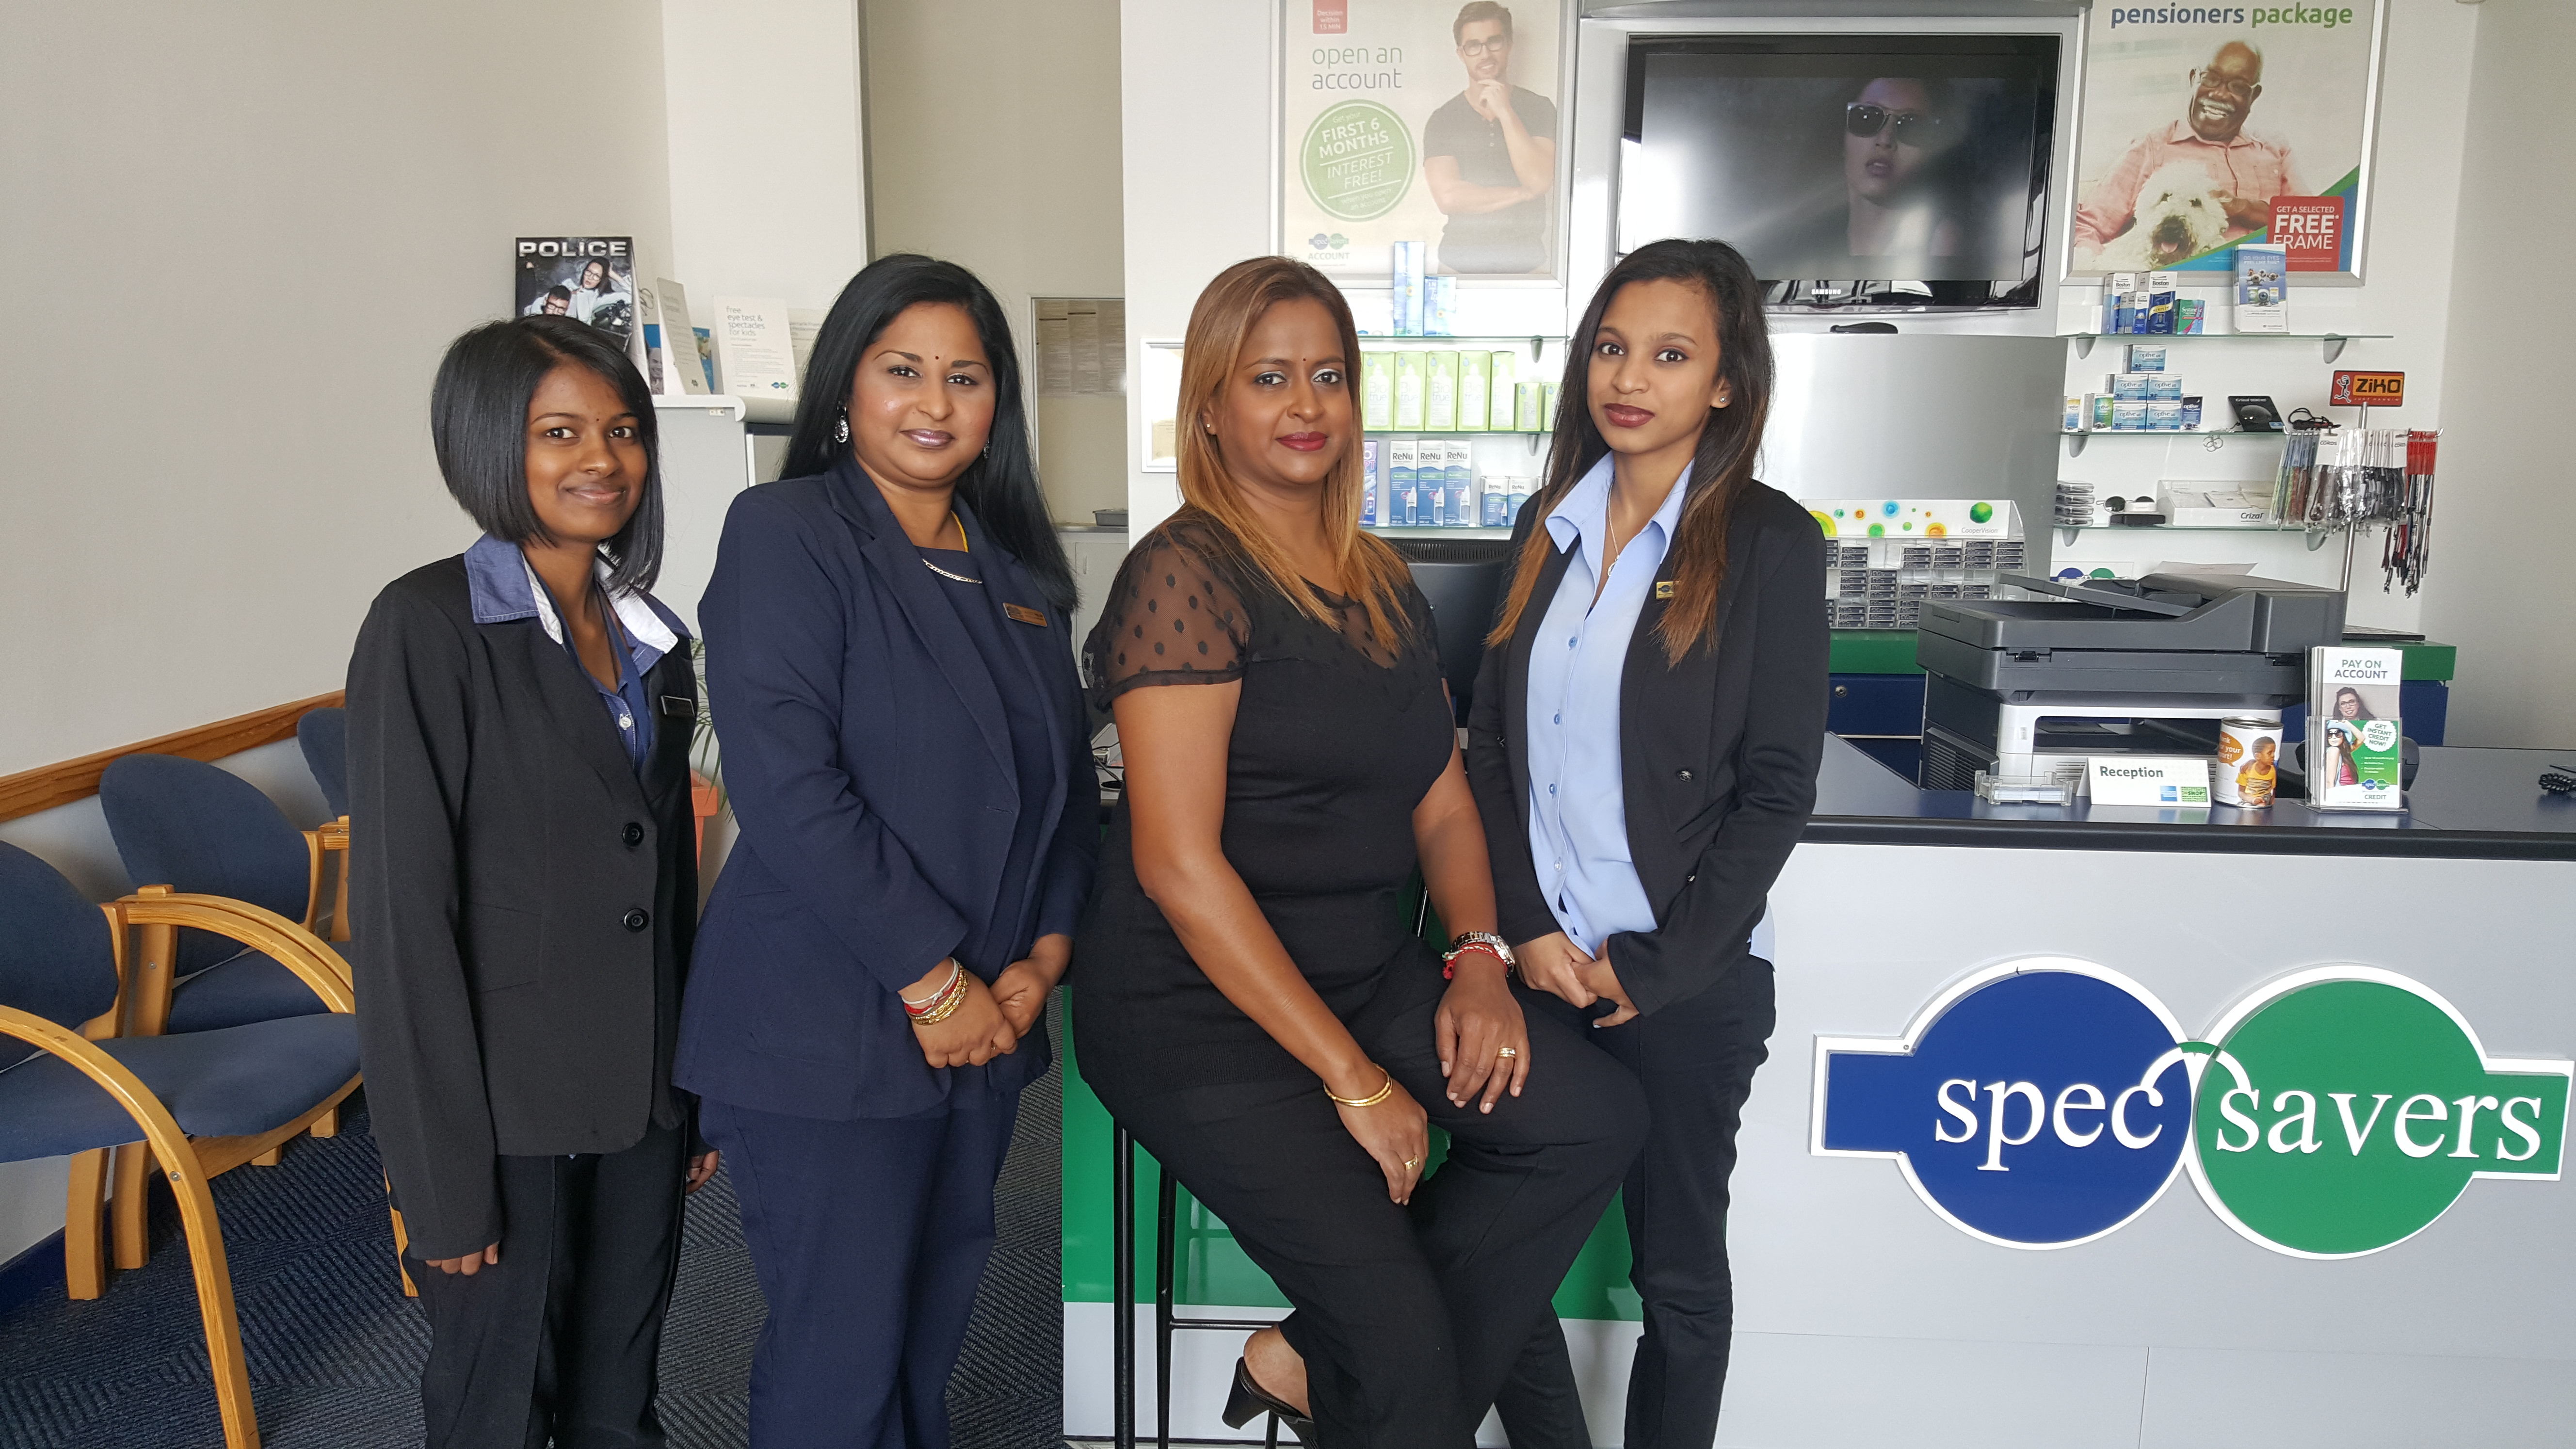 Meet the A Team: From the left: Dhivashni Singh - Optical Product Consultant, Candice Pillay - Sales Supervisor, Thiru Arjoon - Optometrist, Tamara Hamiel - Optical Product Consultant